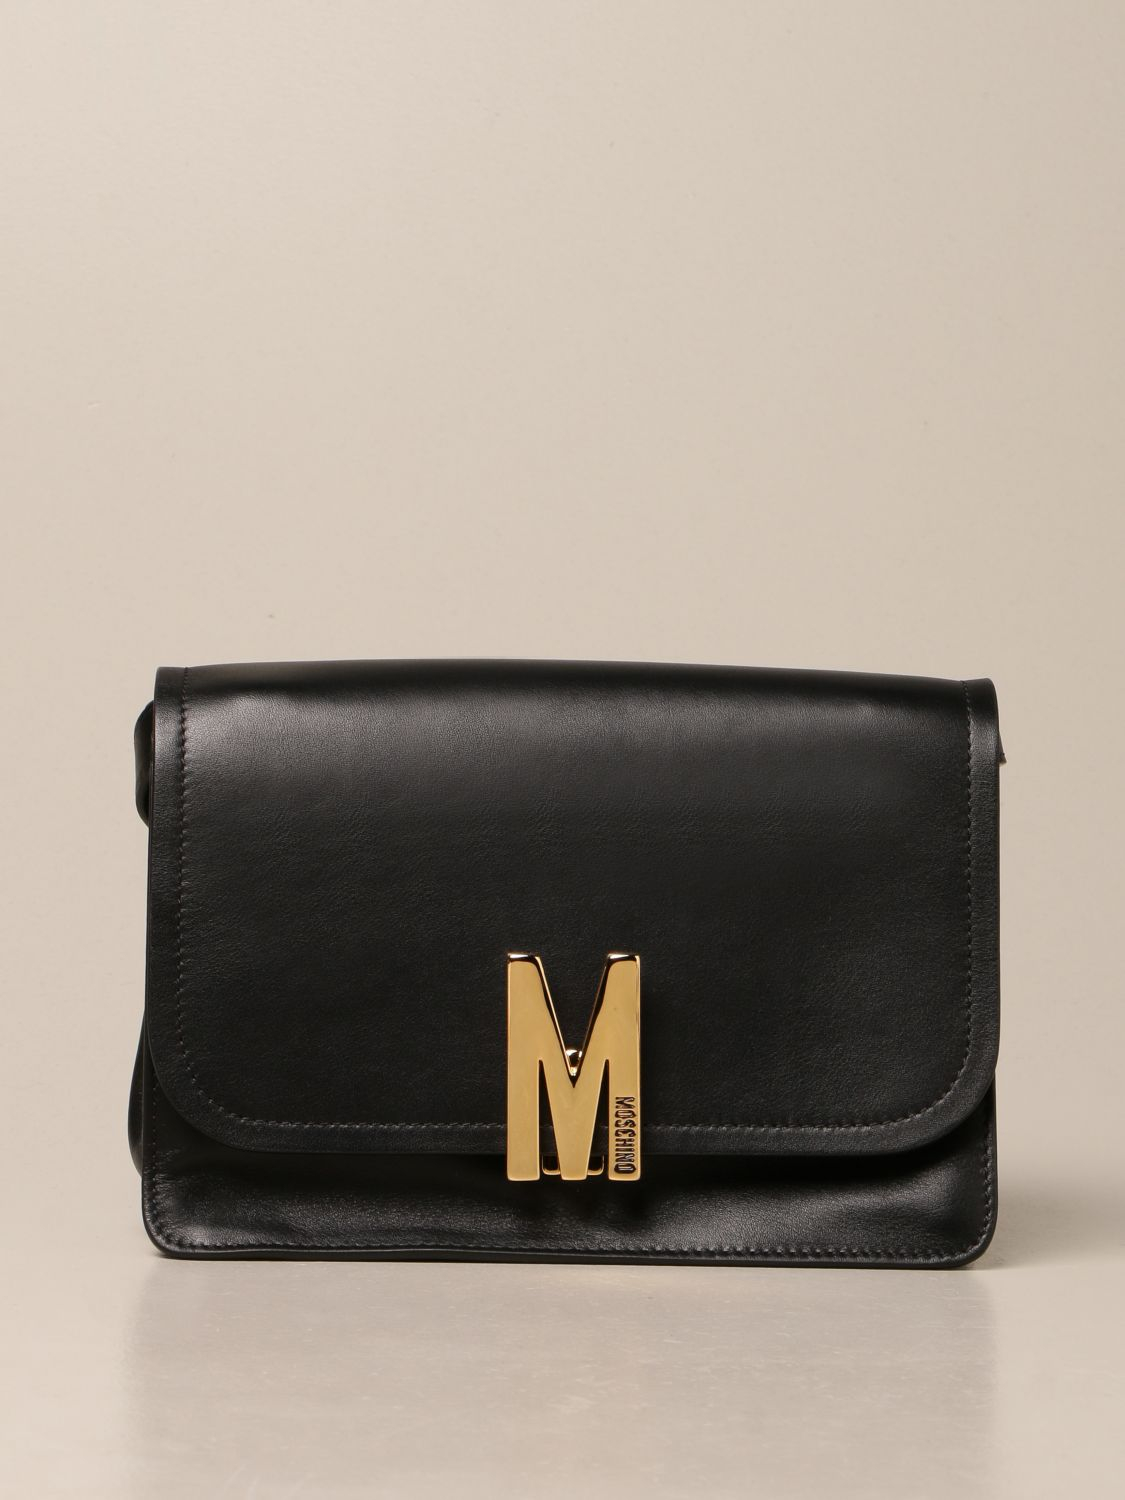 Borsa in pelle moschino couture